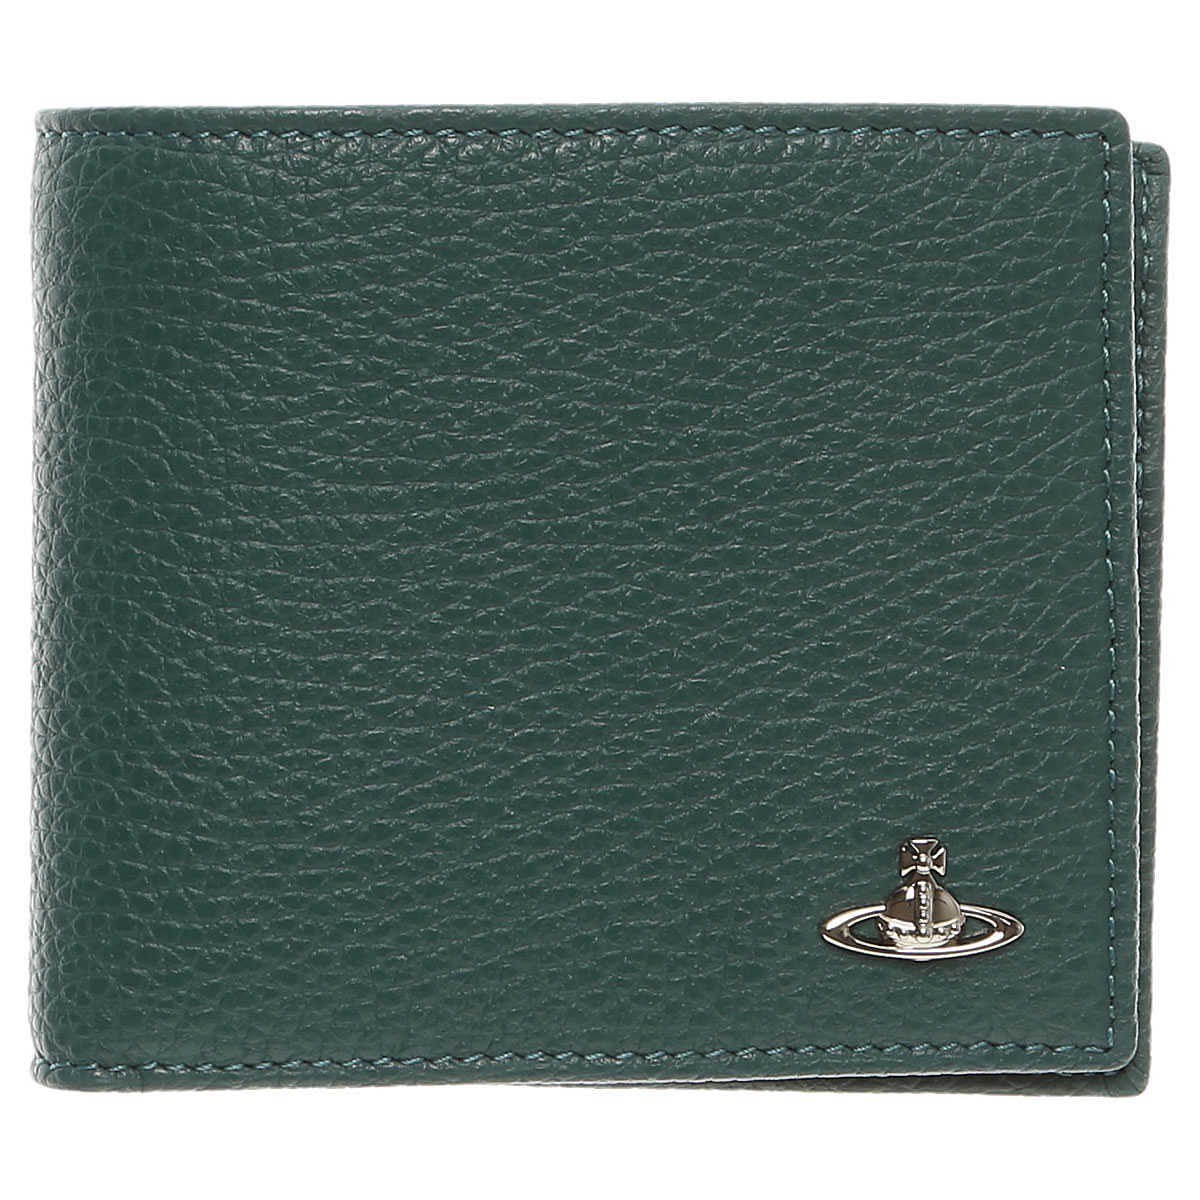 Vivienne Westwood Wallet for Men On Sale Dark Green DK - GOOFASH - Mens WALLETS